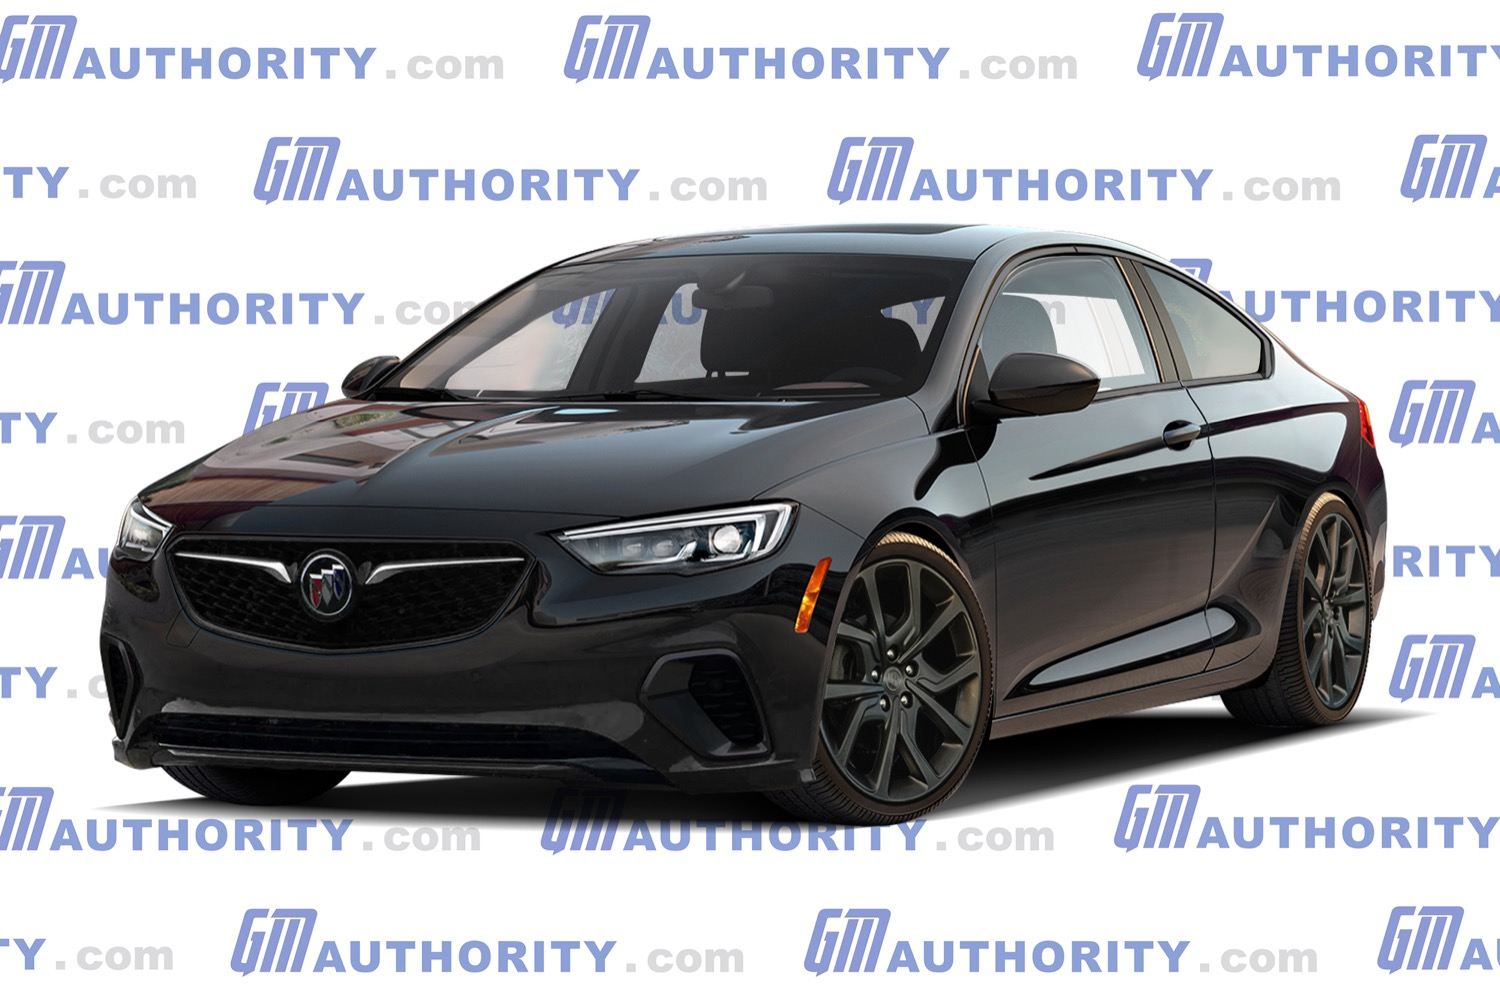 Modern Buick Regal Gnx Rendered | Gm Authority New 2022 Buick Regal Specs, Price, 0-60